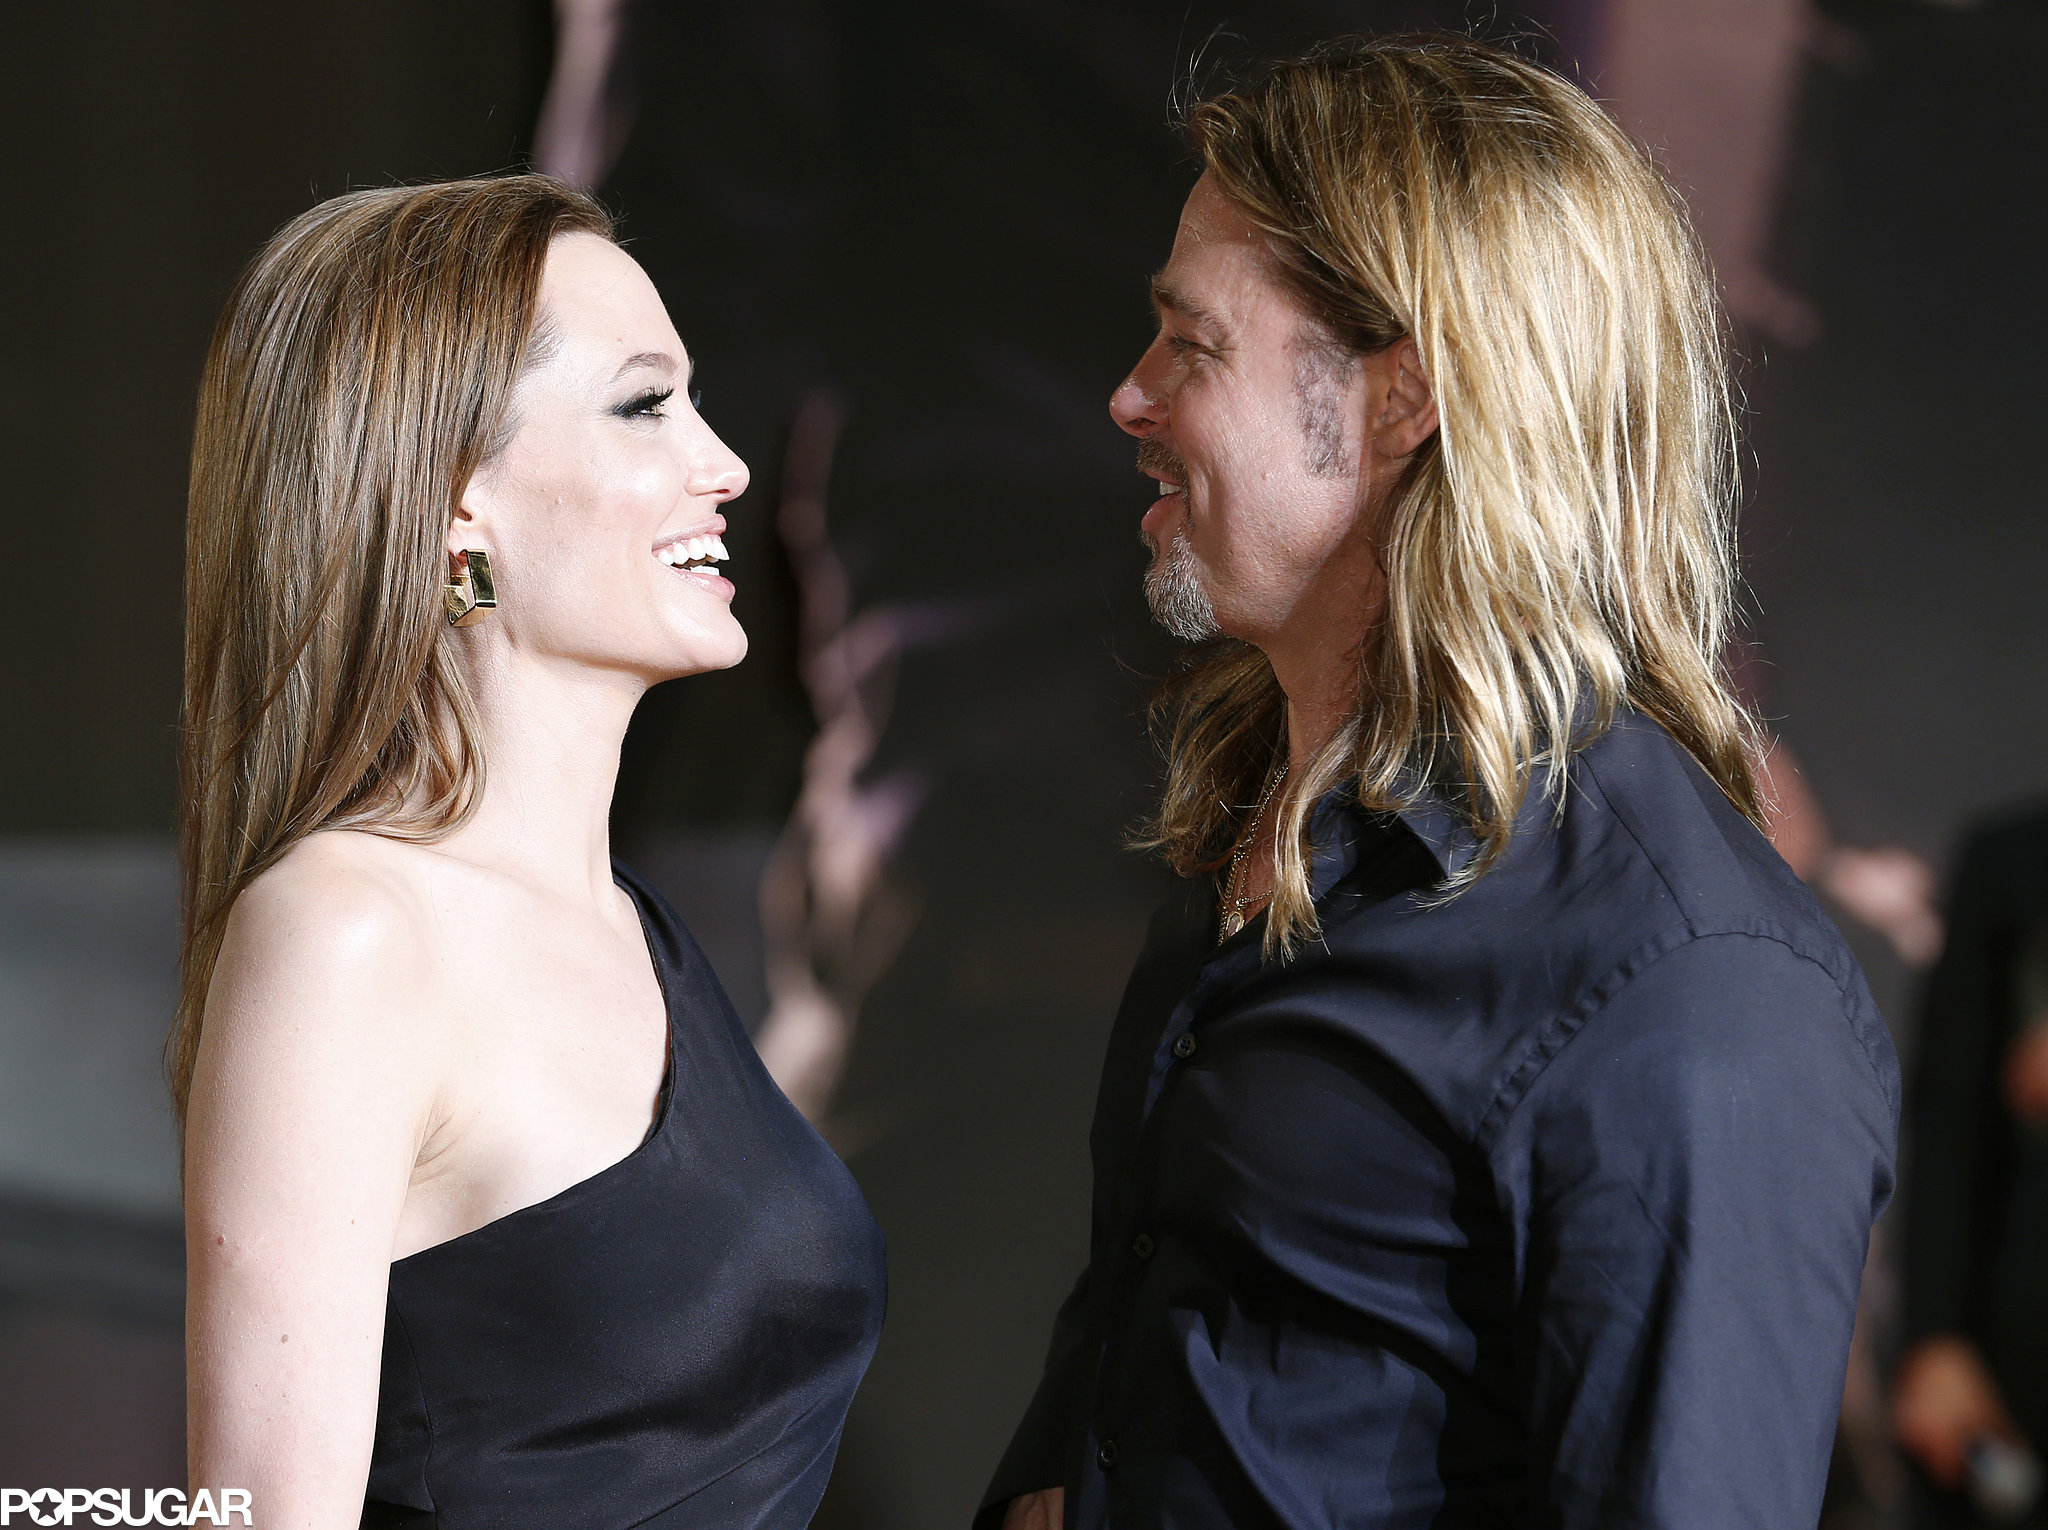 Brad Pitt and Angelina Jolie shared a laugh on the red carpet.